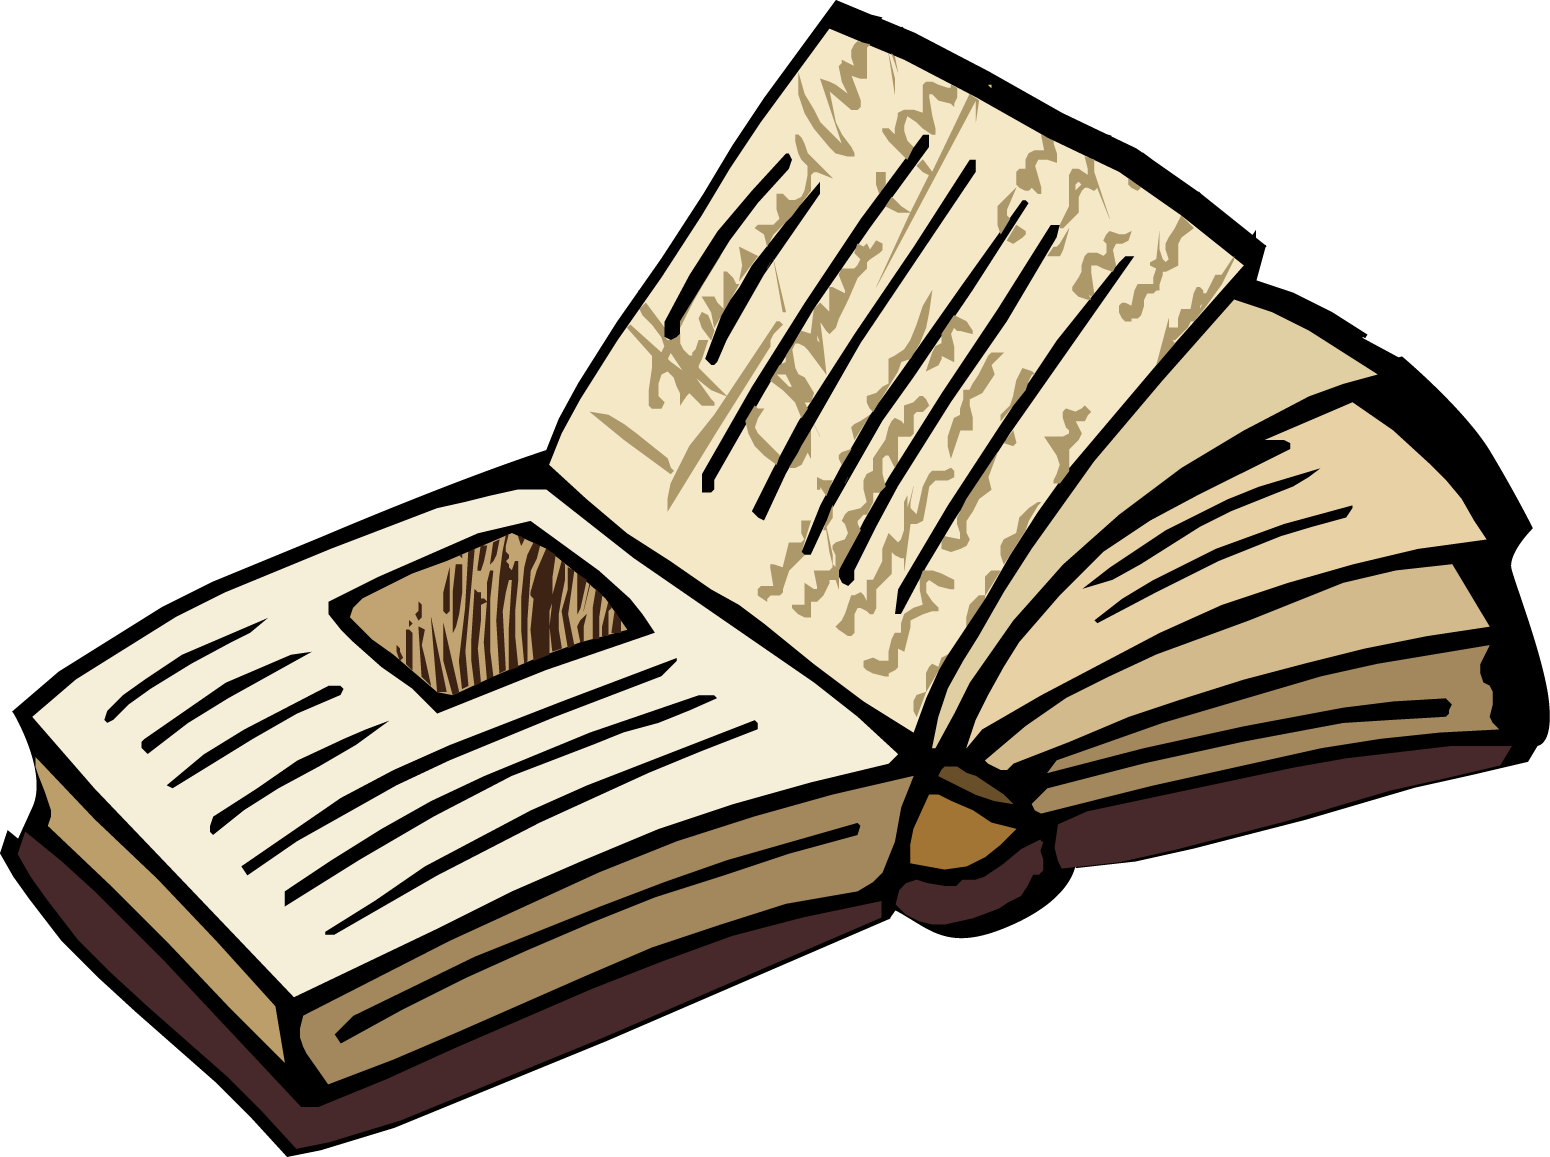 History vector story book. Png transparent images pluspng